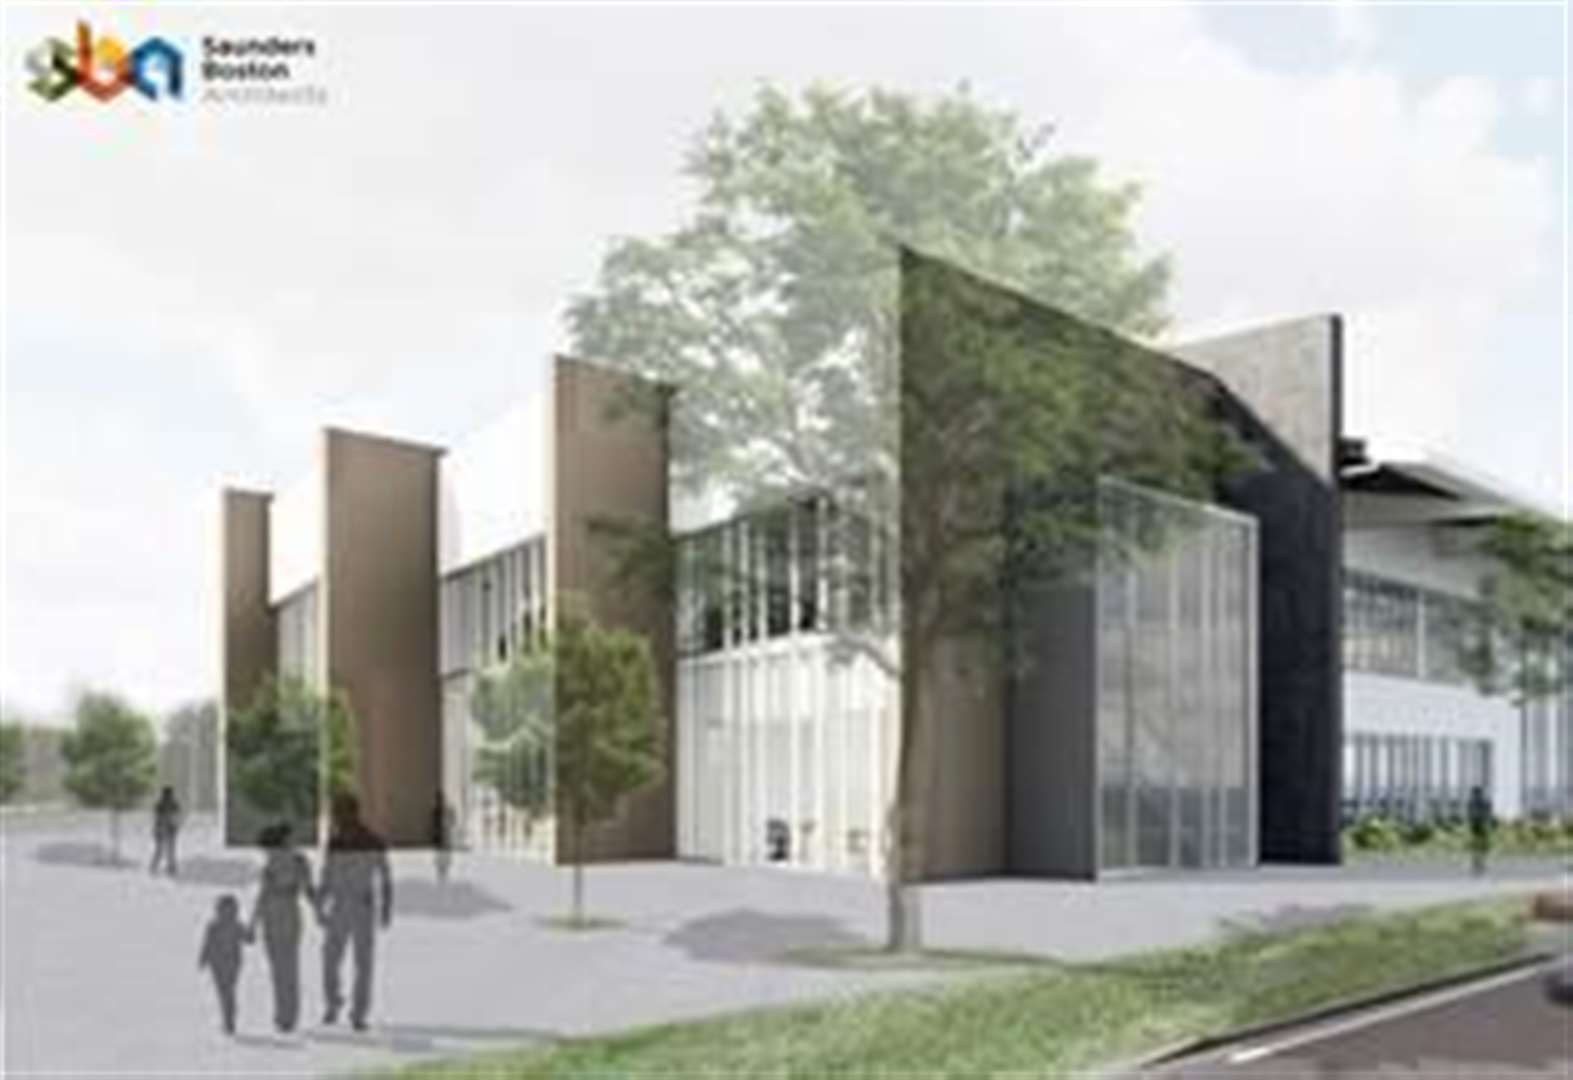 £10.7m leisure centre designed by Saunders Boston Architects gets planning permission